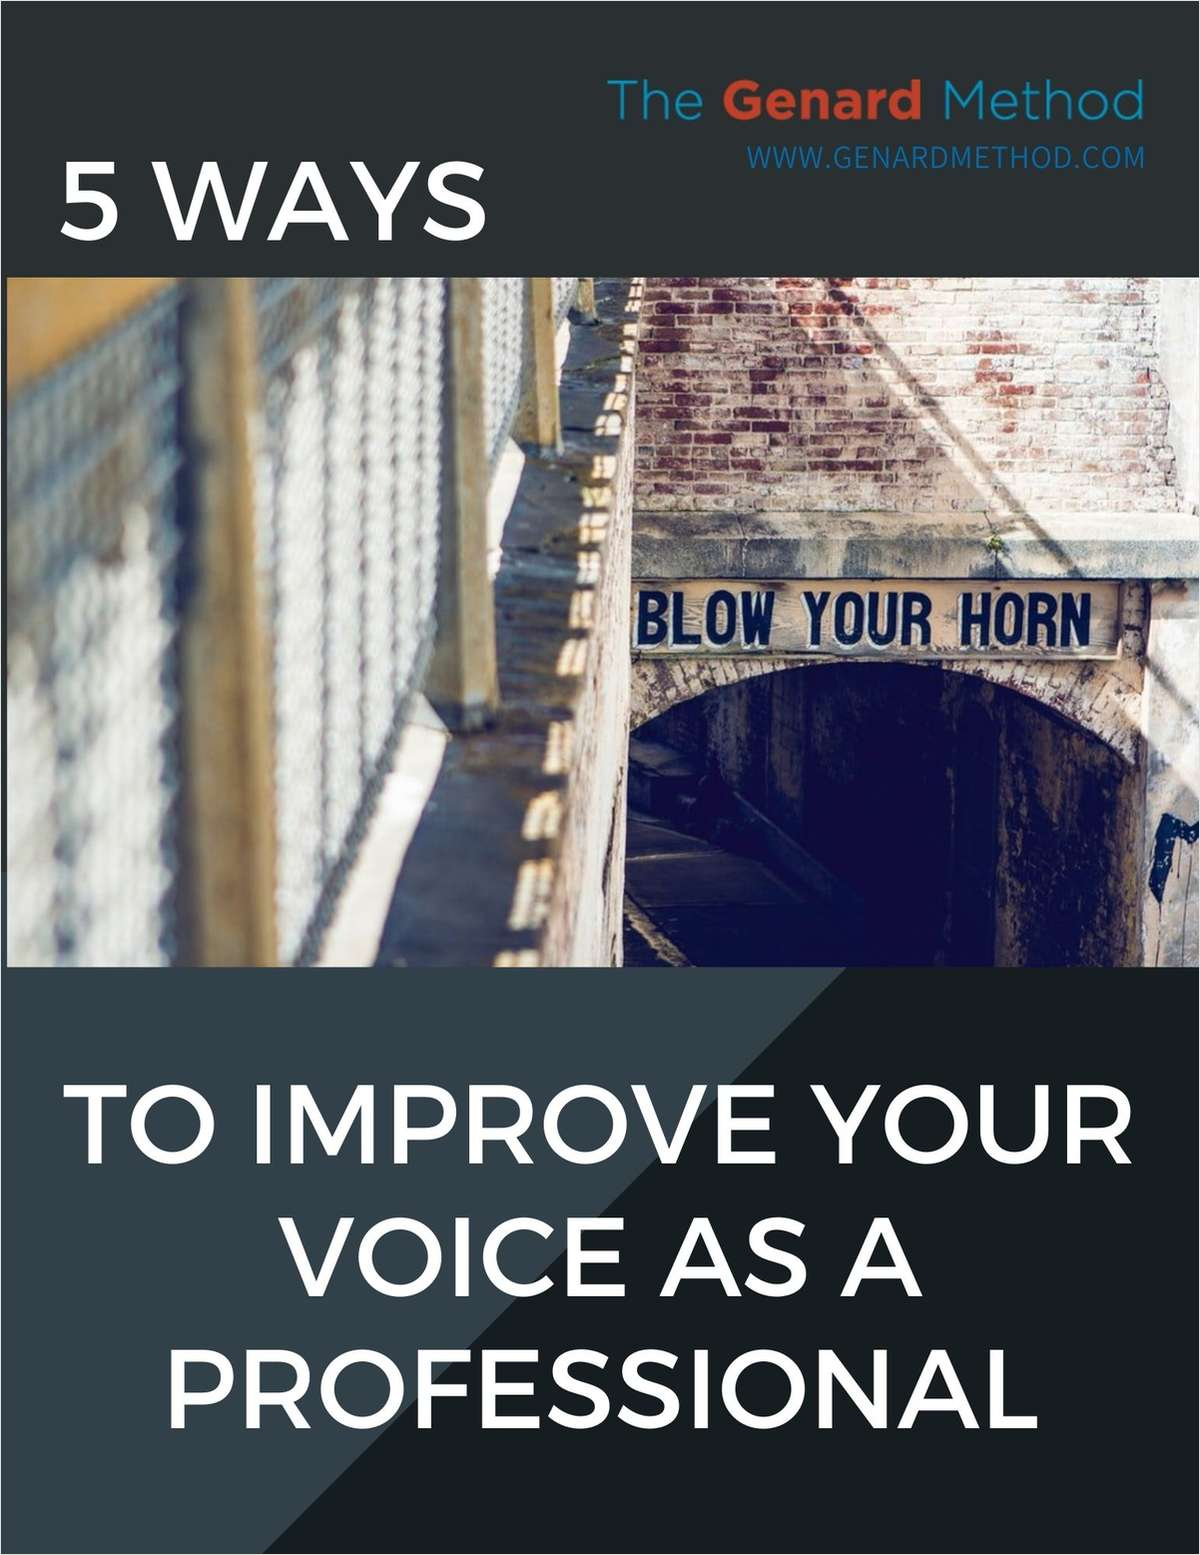 5 Ways to Improve Your Voice as a Professional